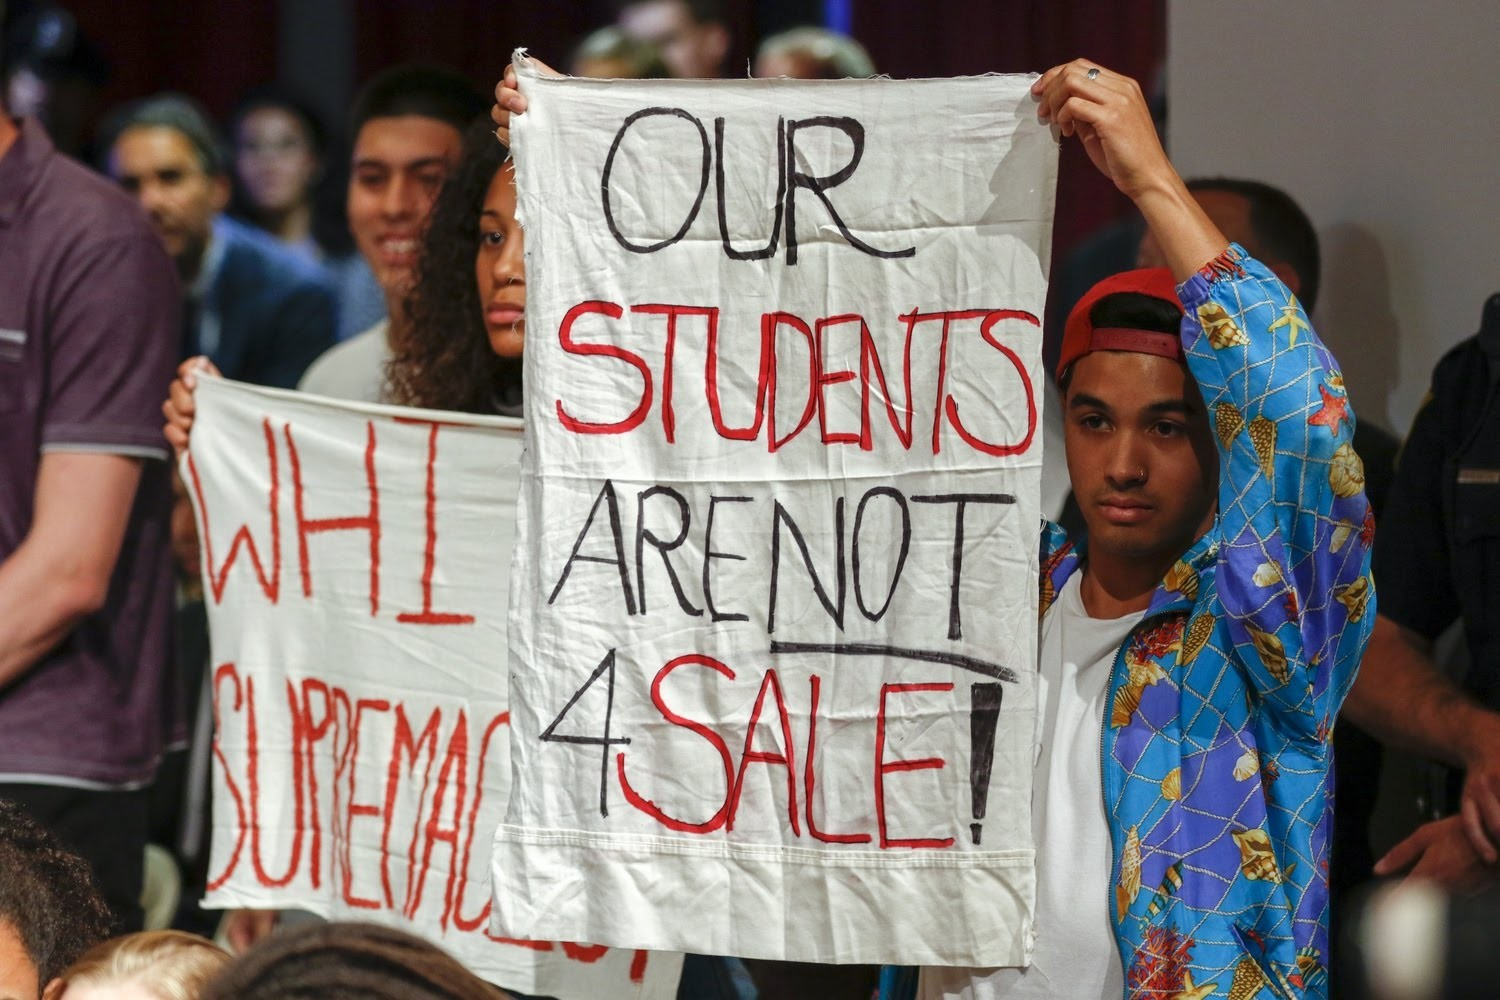 Quisol (right) holds up a sign protesting a speech by Trump's Education Secretary Betsy DeVos at Harvard in September 2017.